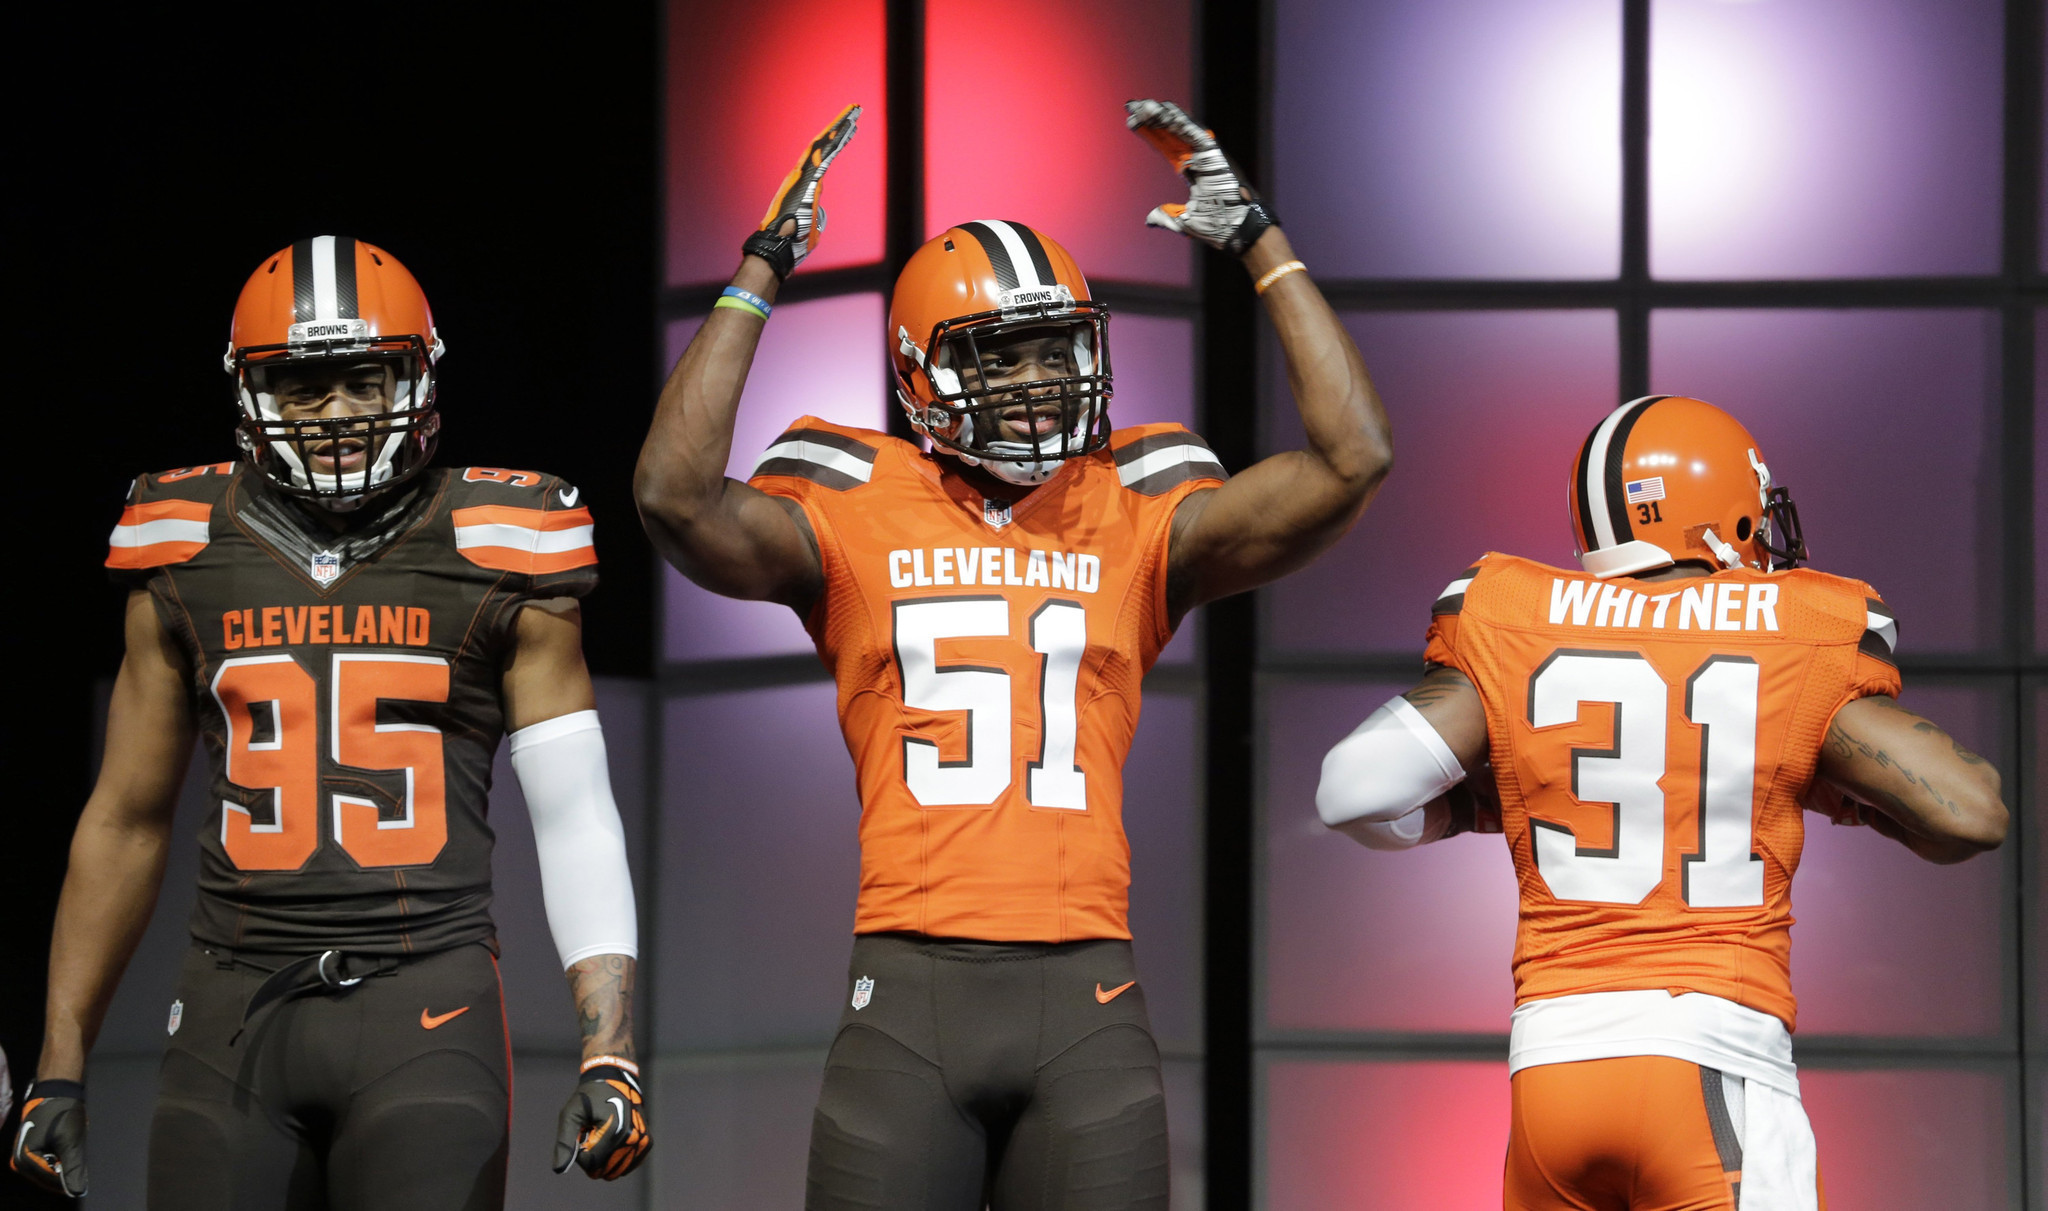 Cleveland Browns The Oregon Ducks Of NFL Thanks To New Uniforms